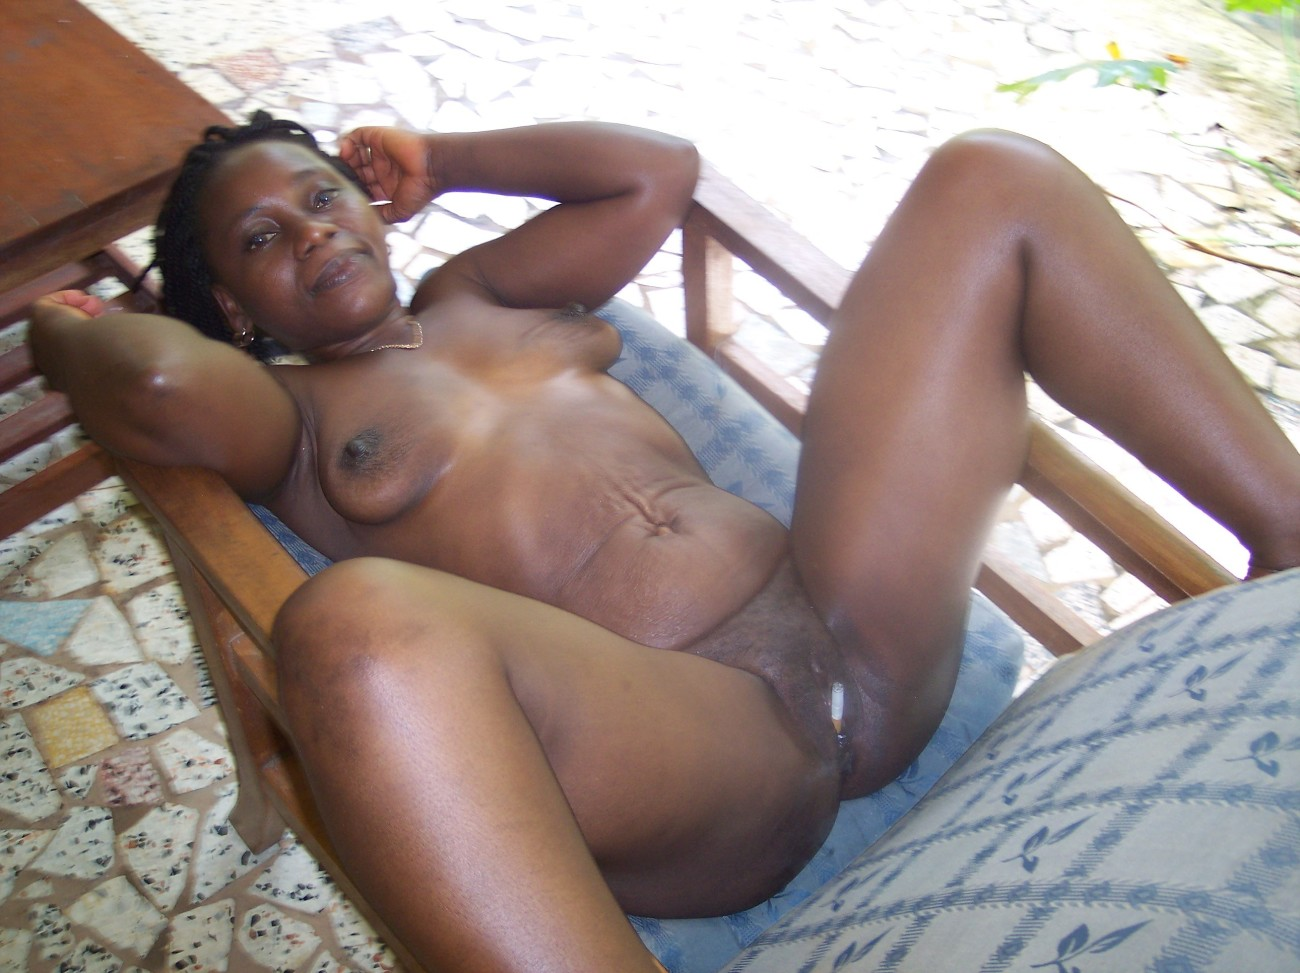 African Pornography Websites The..